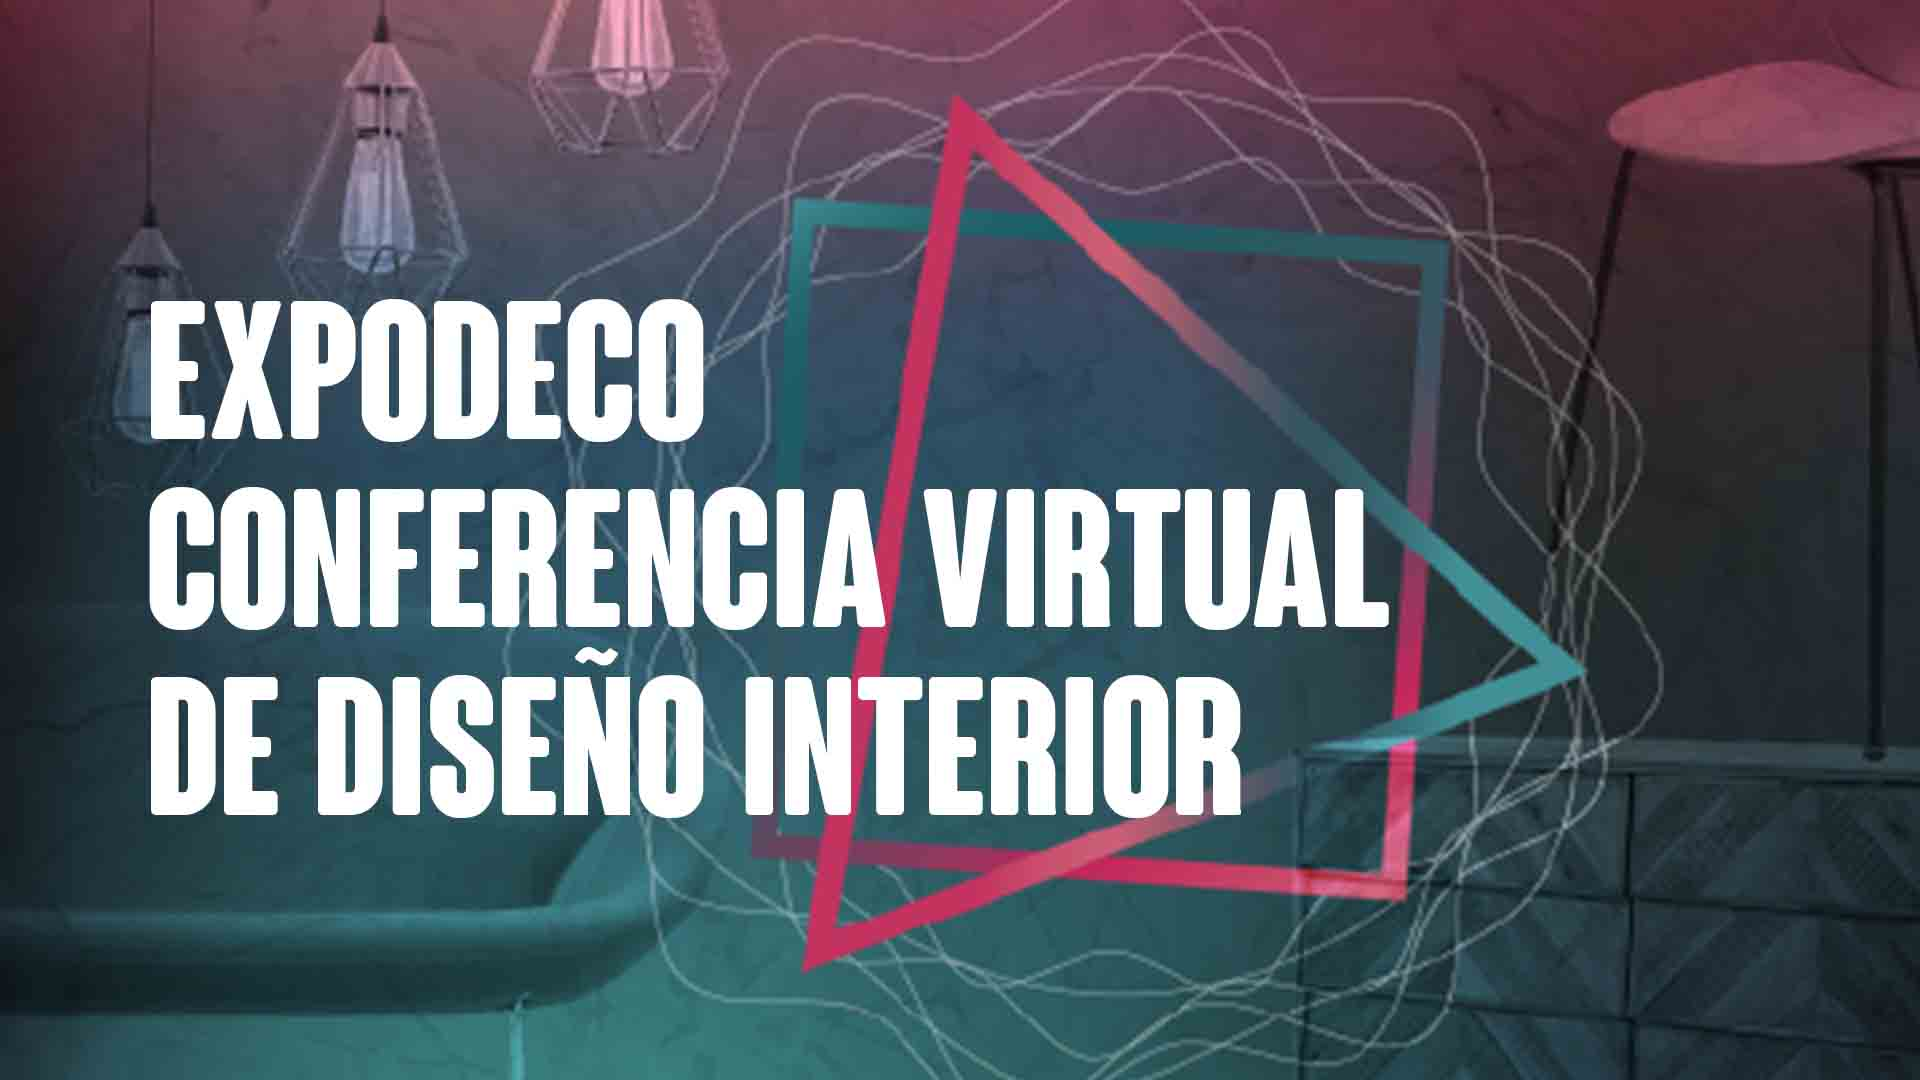 Expodeco - Conferencia Virtual de Diseño Interior